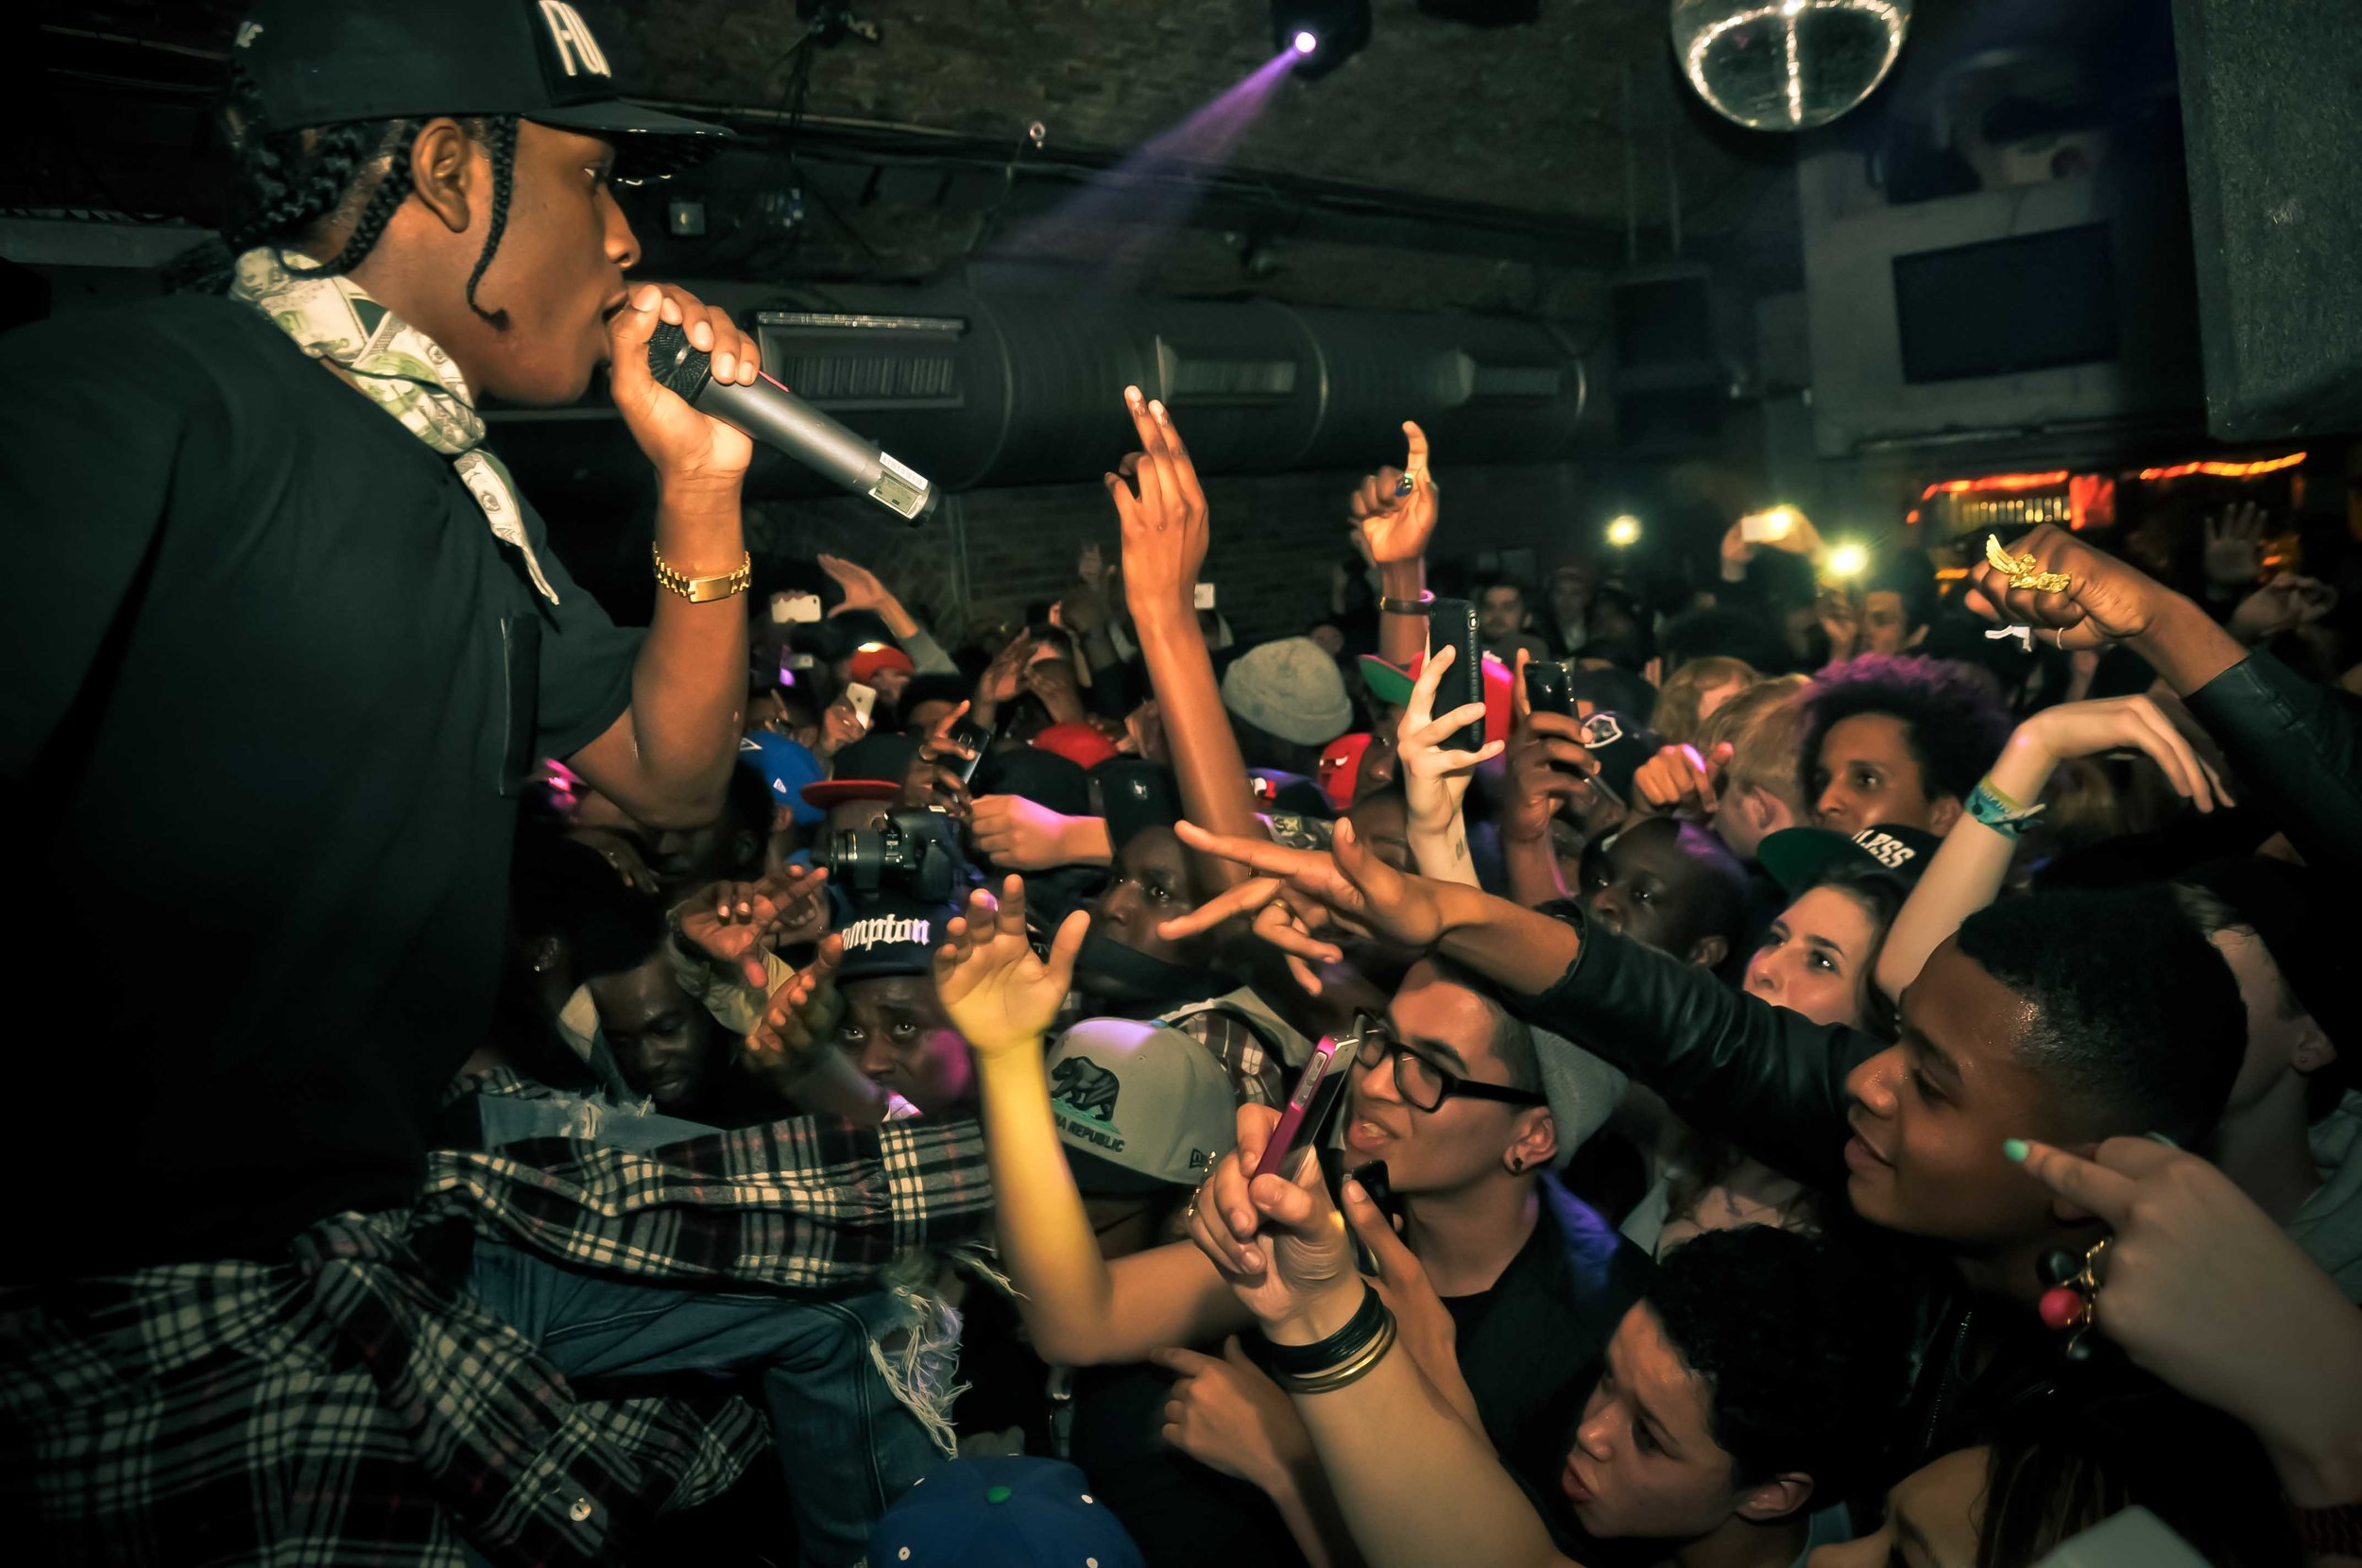 livin-proof-with-aap-rocky-march-2012_7107607473_o.jpg